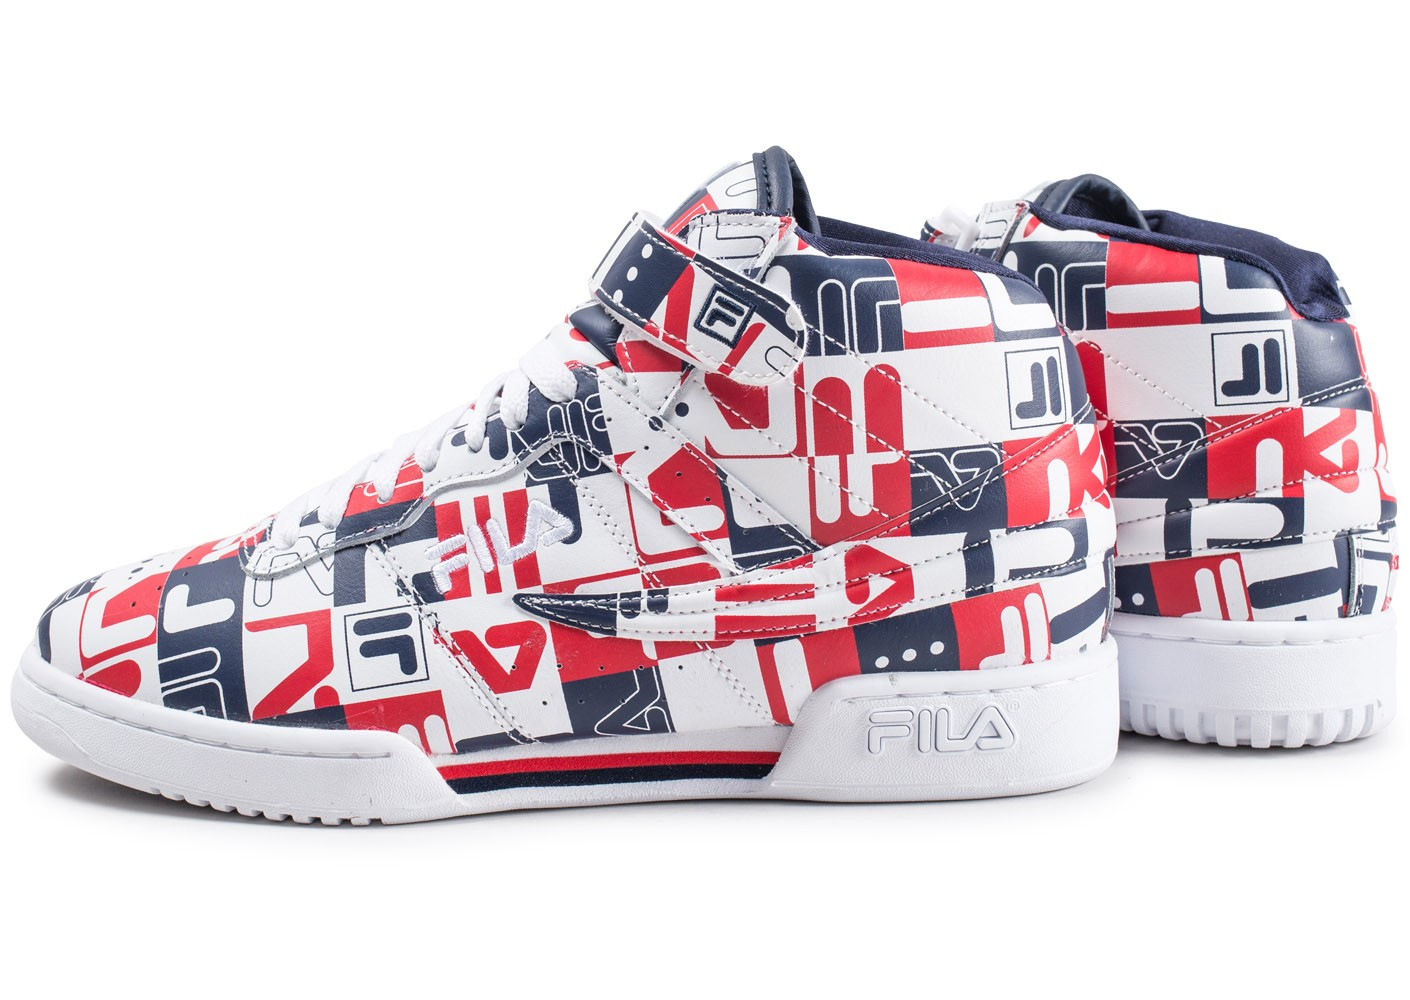 Fila Homme F13 Chaussures Chausport Archive If7bmy6yvg Baskets rdCxBeo